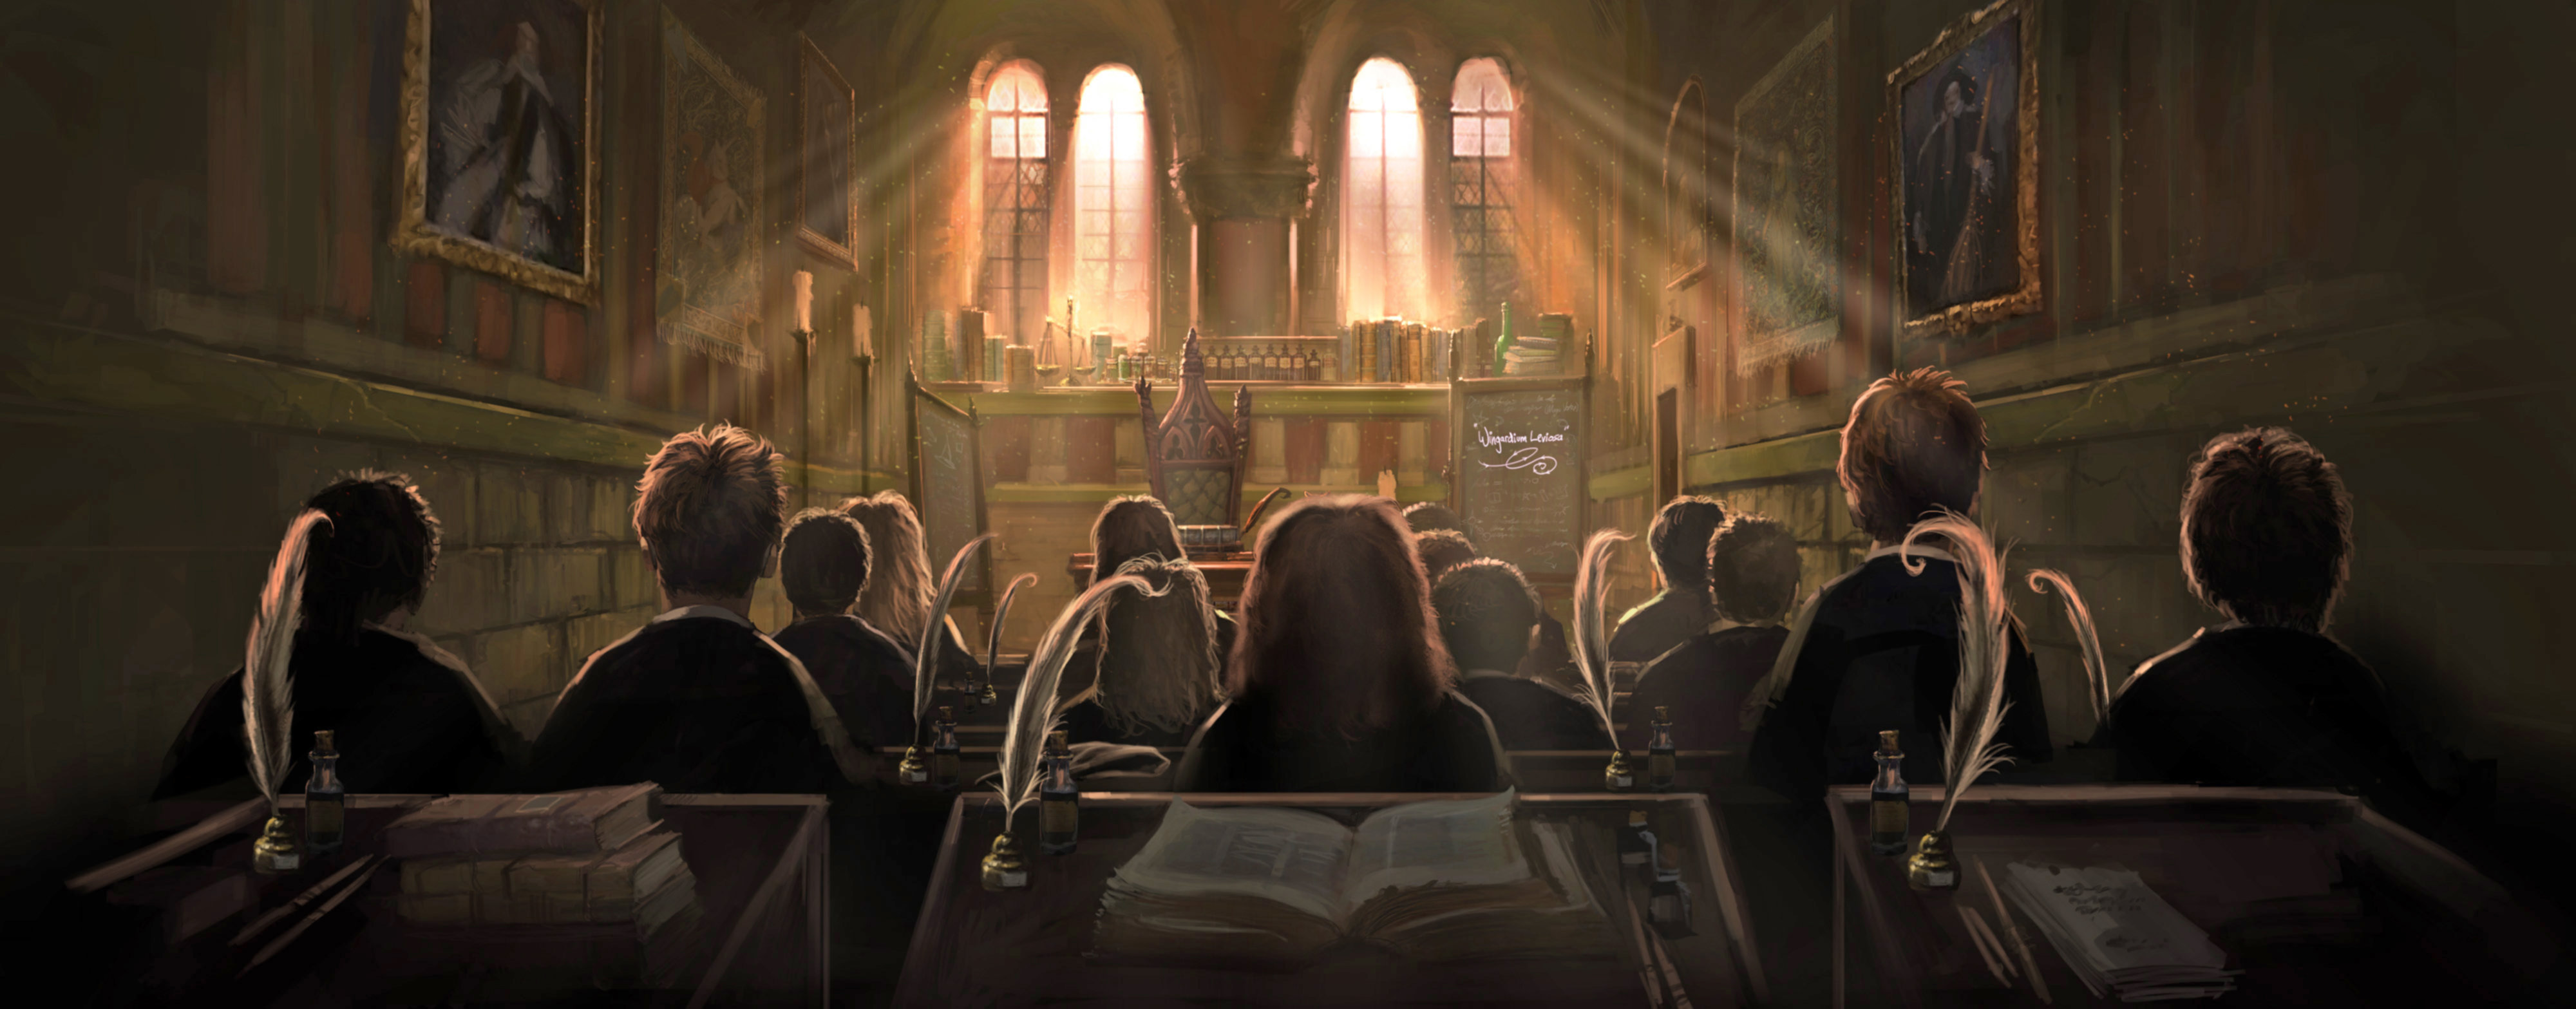 FiliusFlitwick_PM_B1C10M2_CharmsClass_Moment